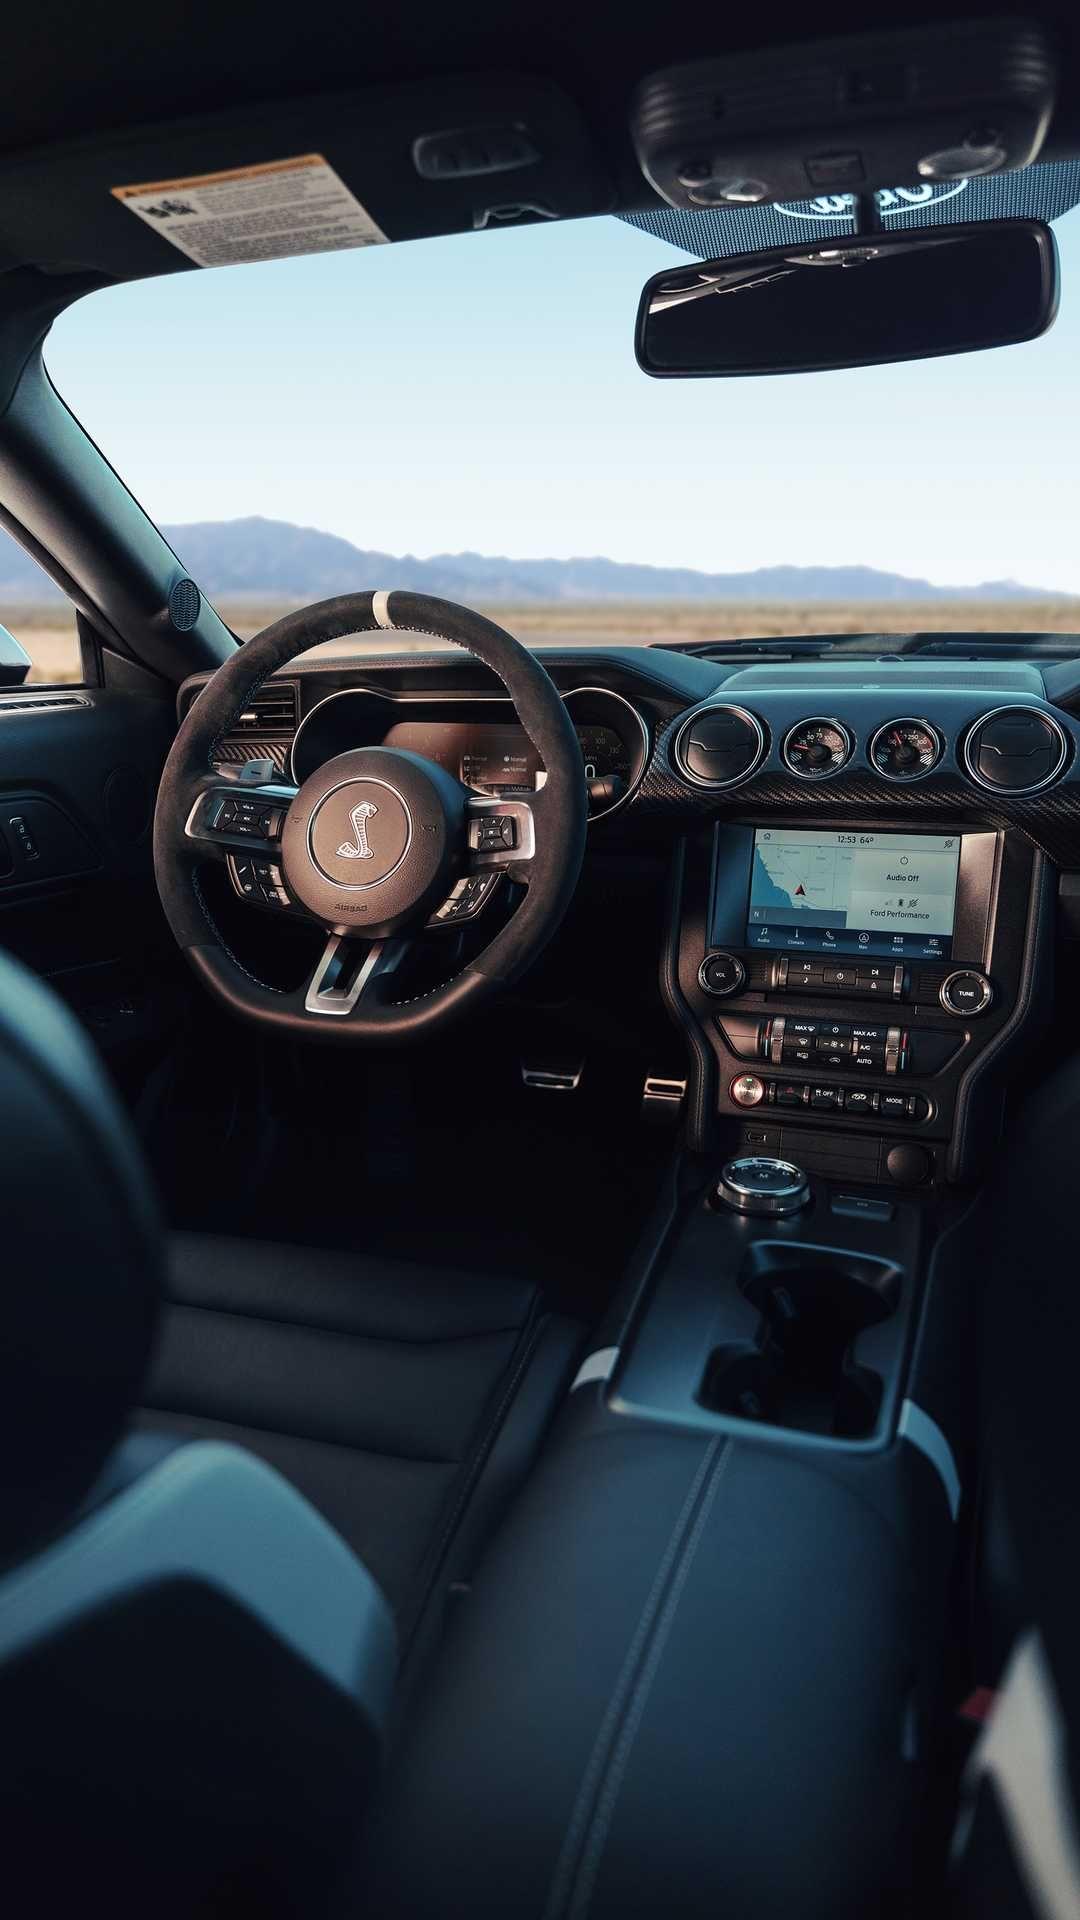 New 2020 ford mustang shelby gt500 interior